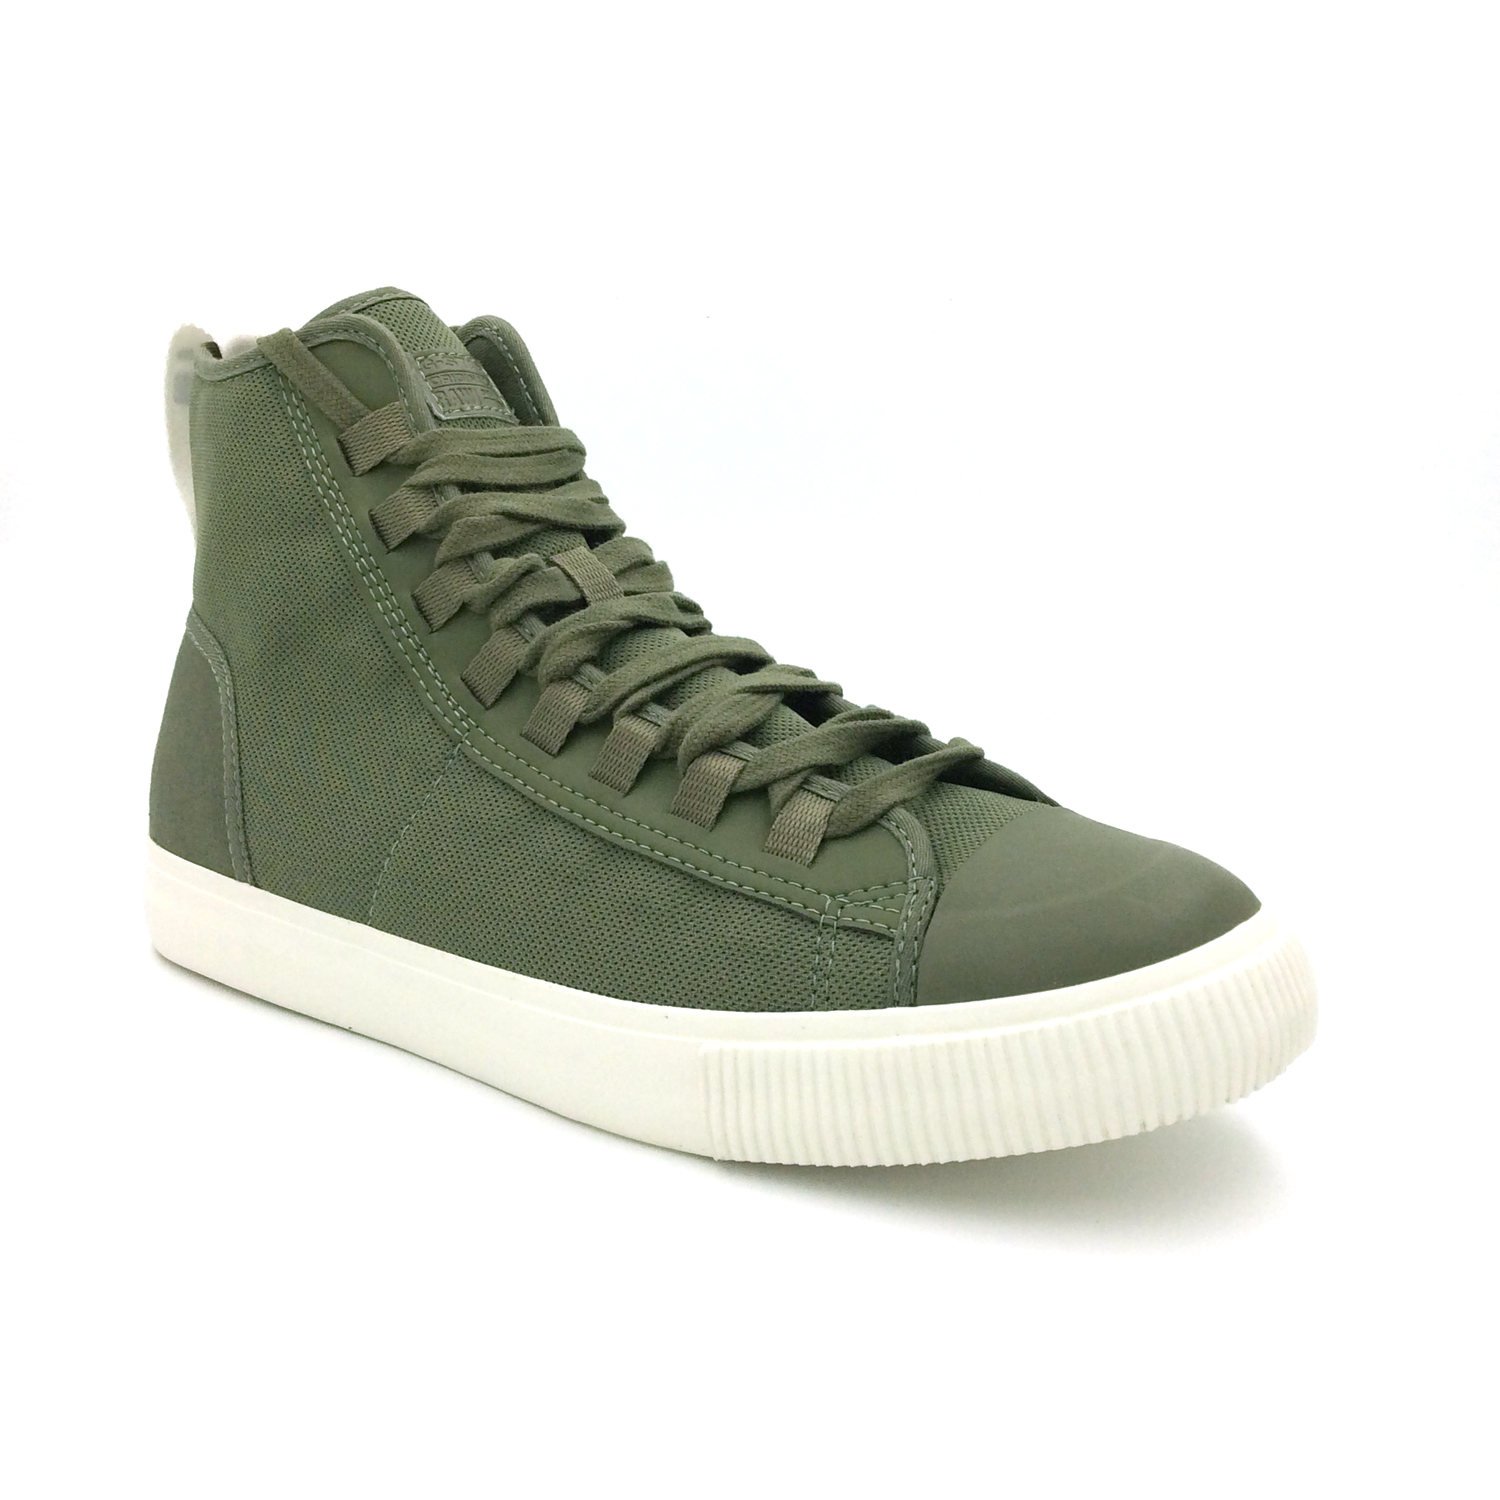 Up High Star Top Mid Lace G Ii Green Men Sneakers Scuba Sage d08758 Afn6qWHw1